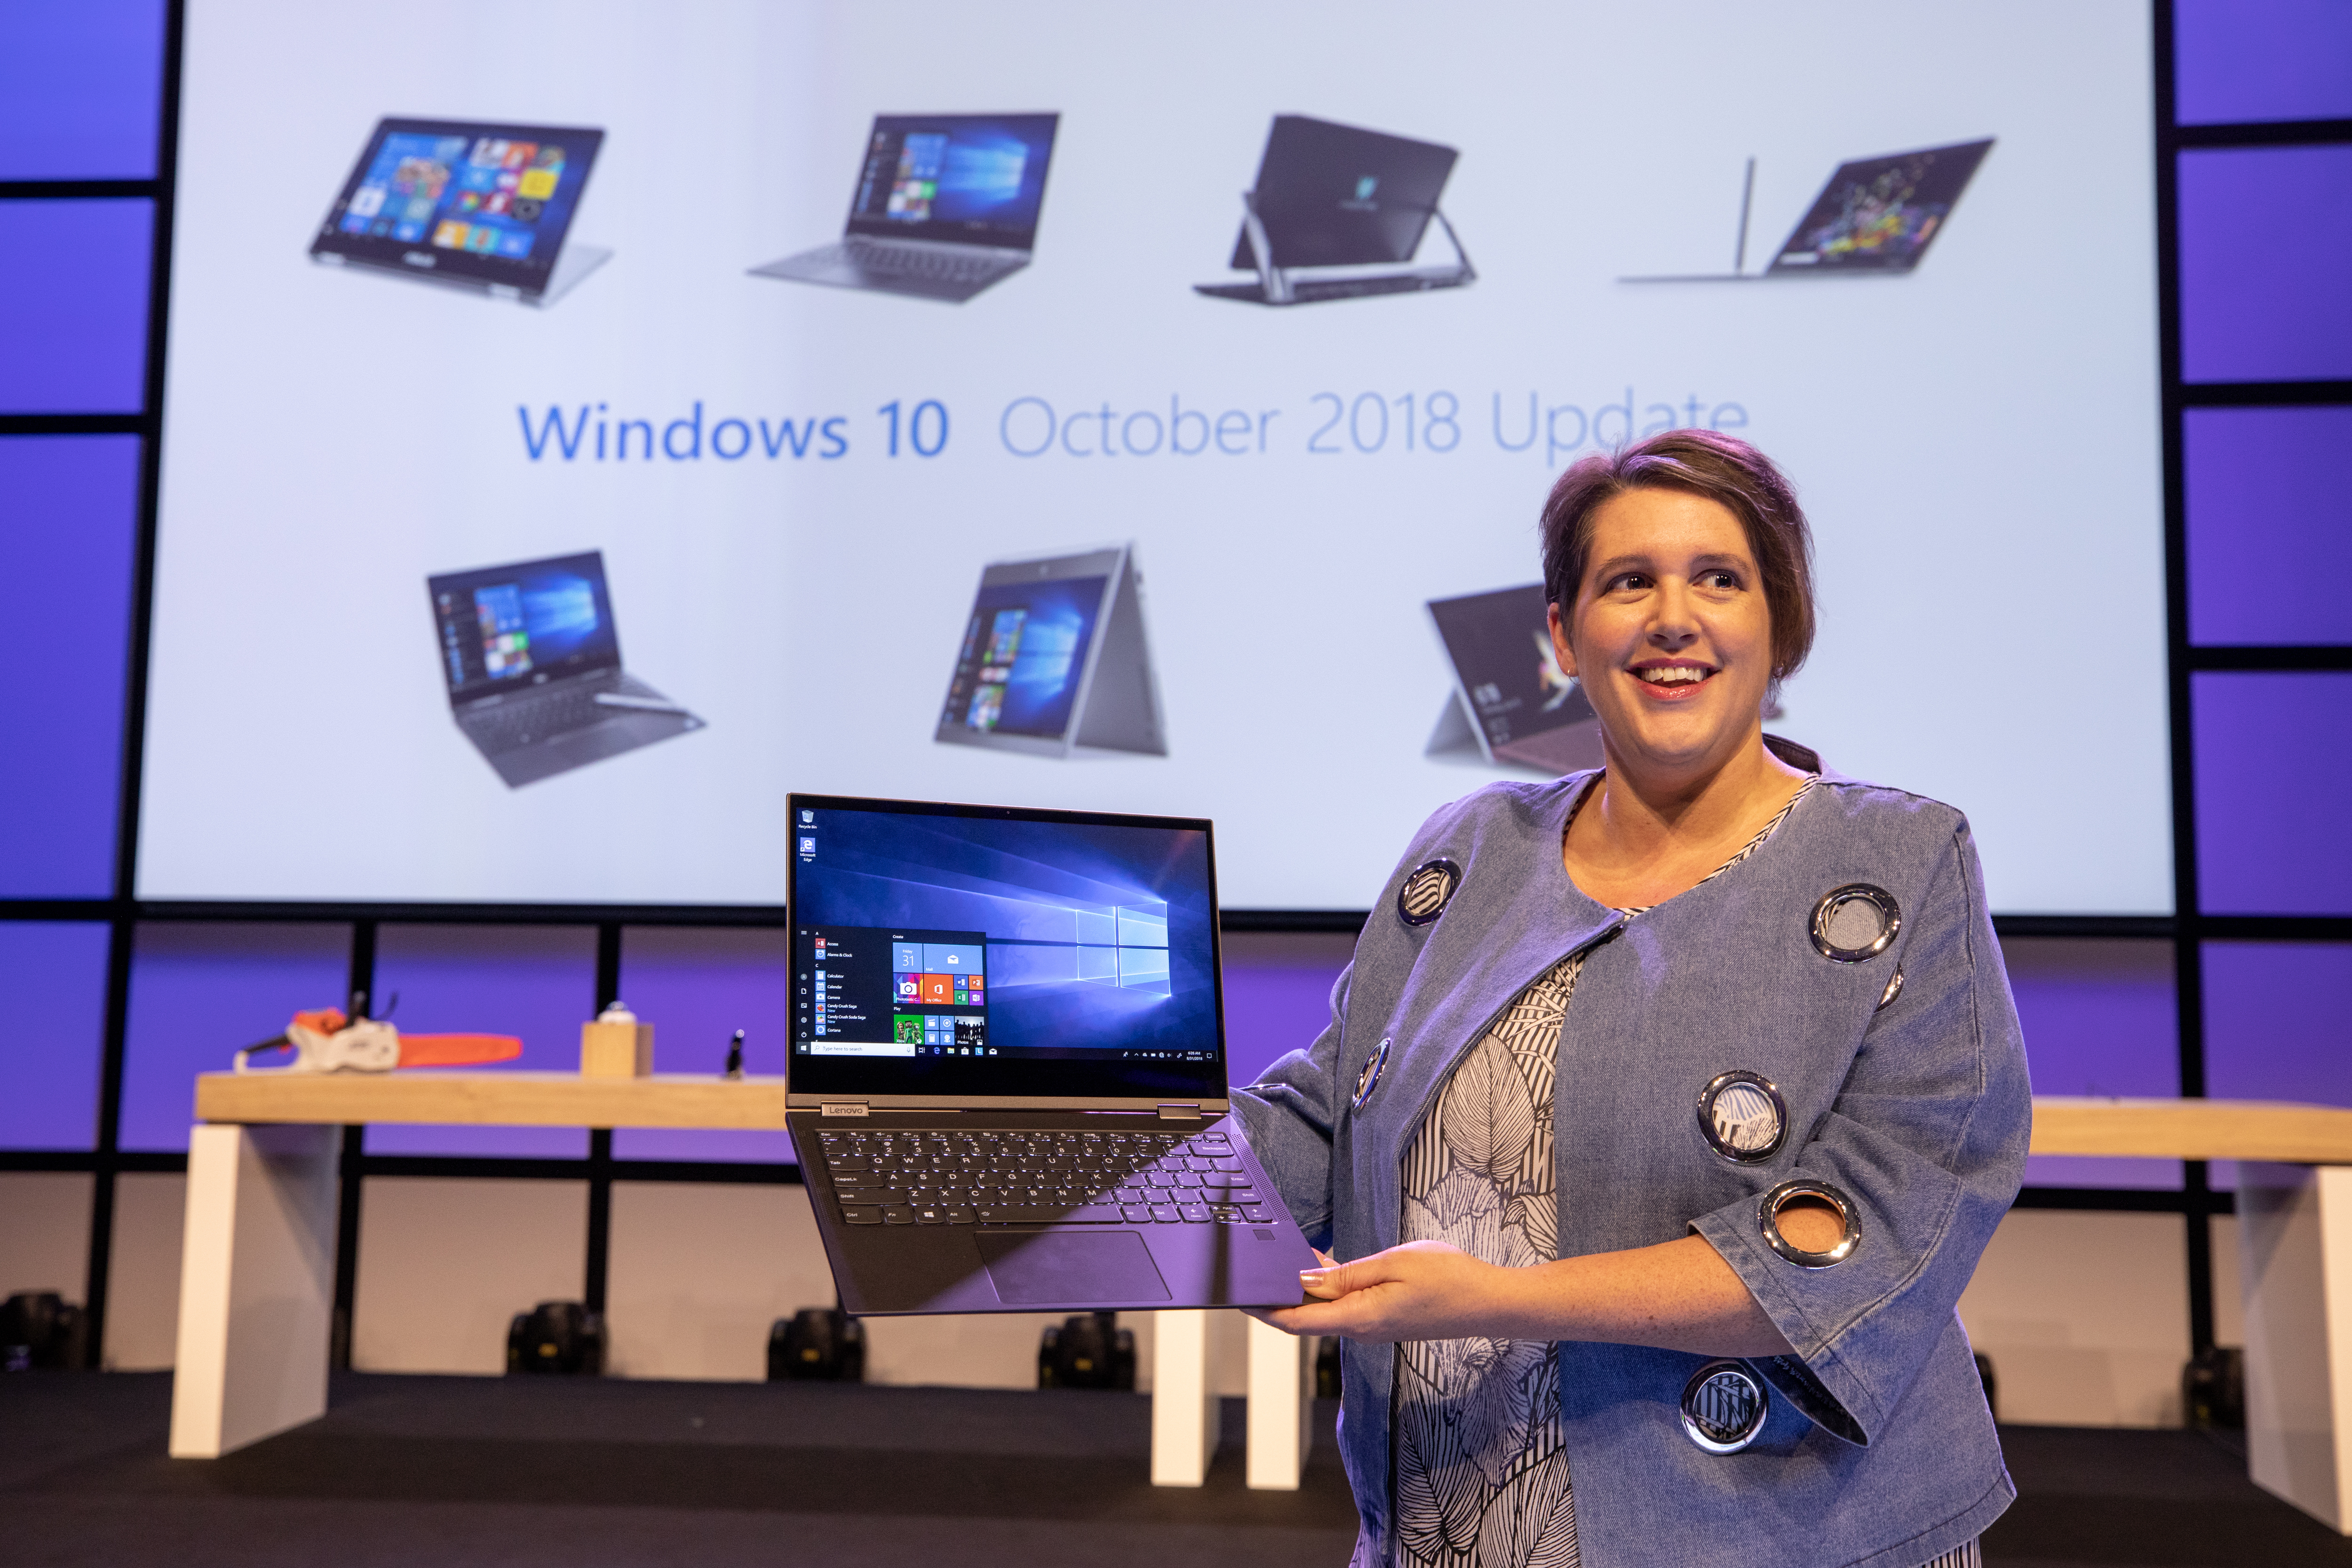 Erin Chapple, corporate vice president, Microsoft, speaking at the IFA 2018 keynote in Berlin